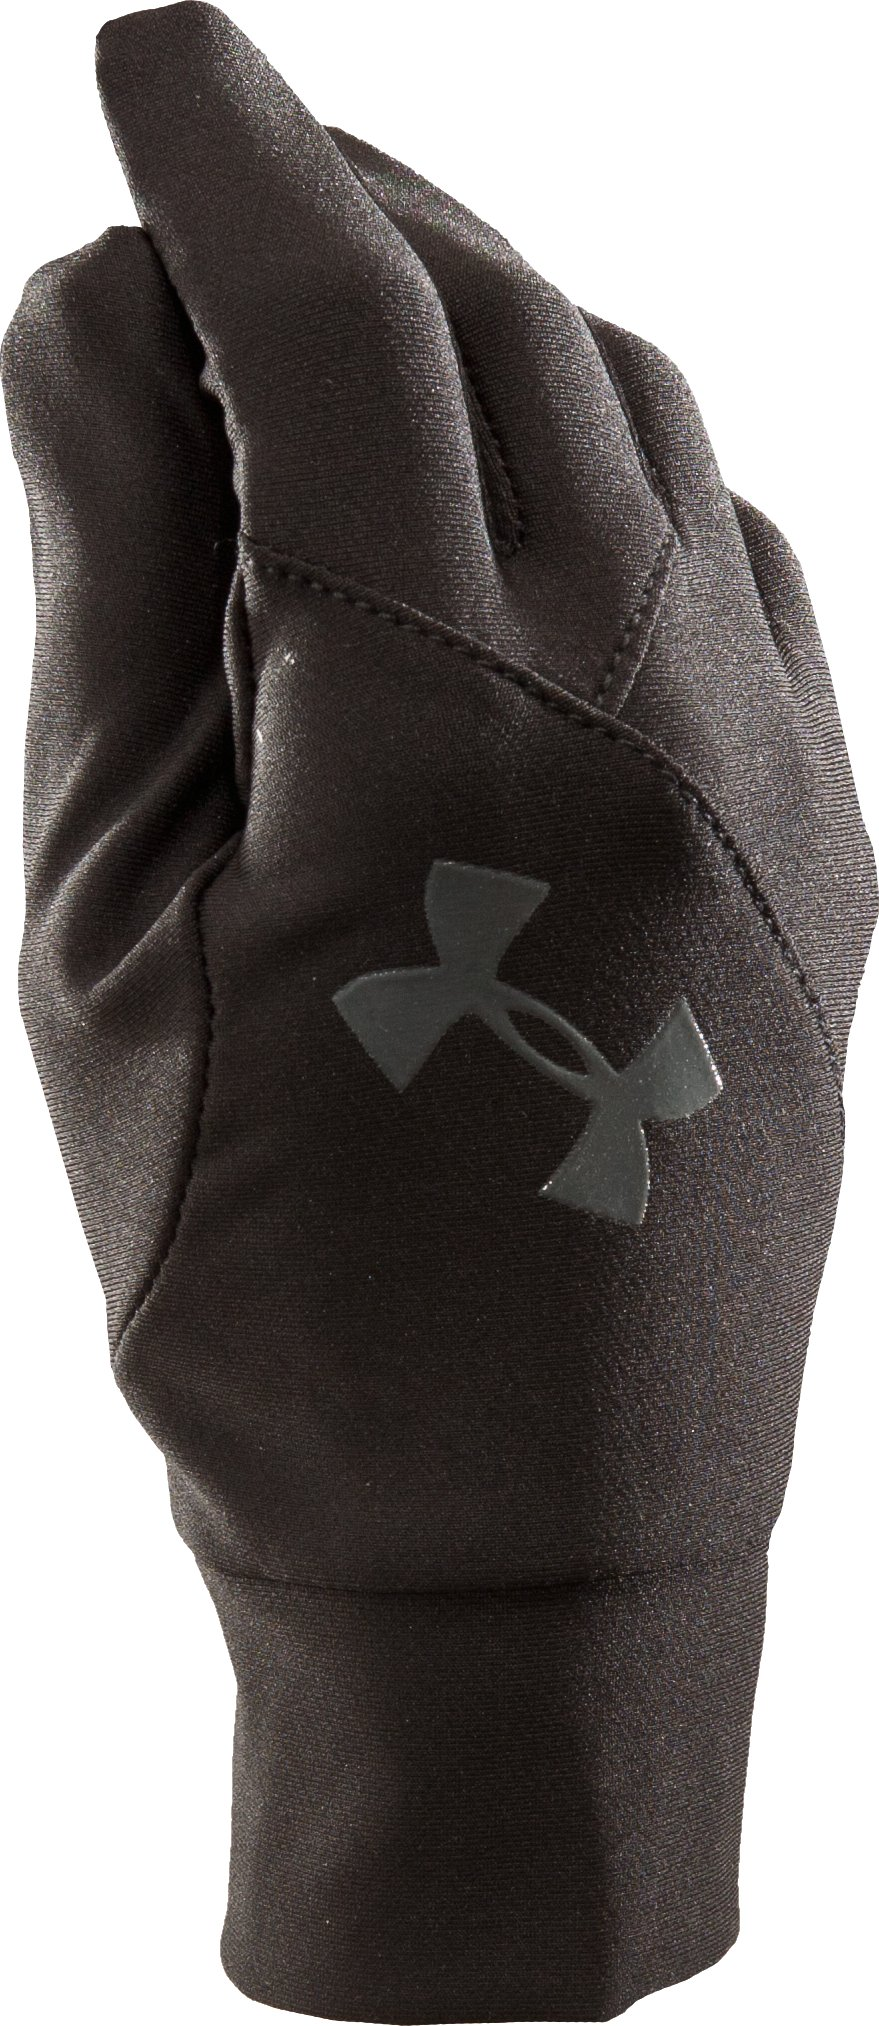 Women's Liner Gloves, Black